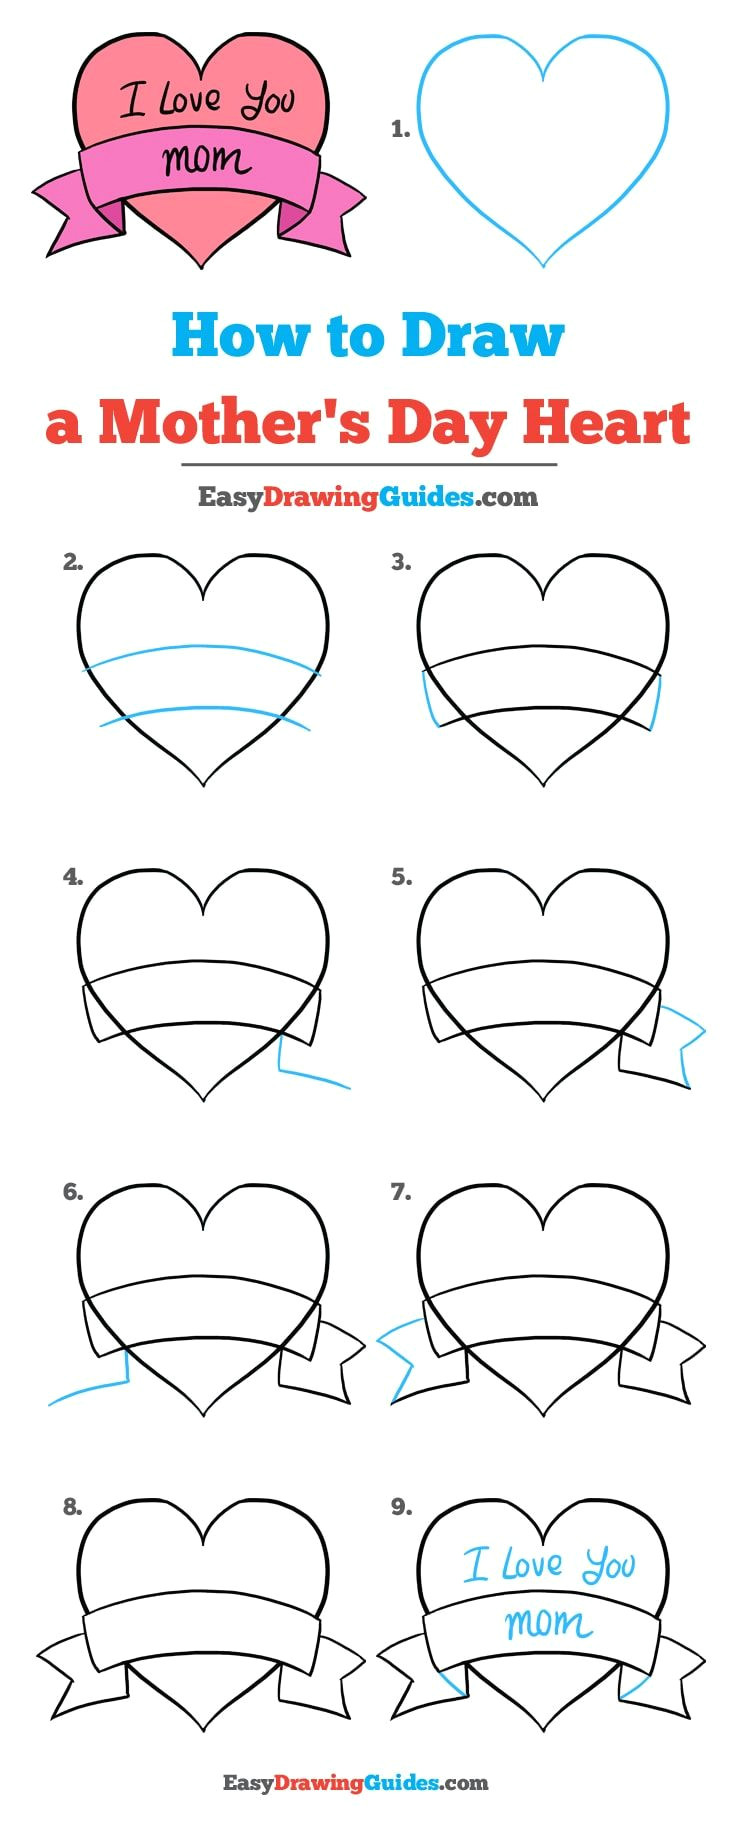 how to draw a mother s day heart really easy drawing tutorial sketchnotes drawings drawing tutorials for kids und easy drawings